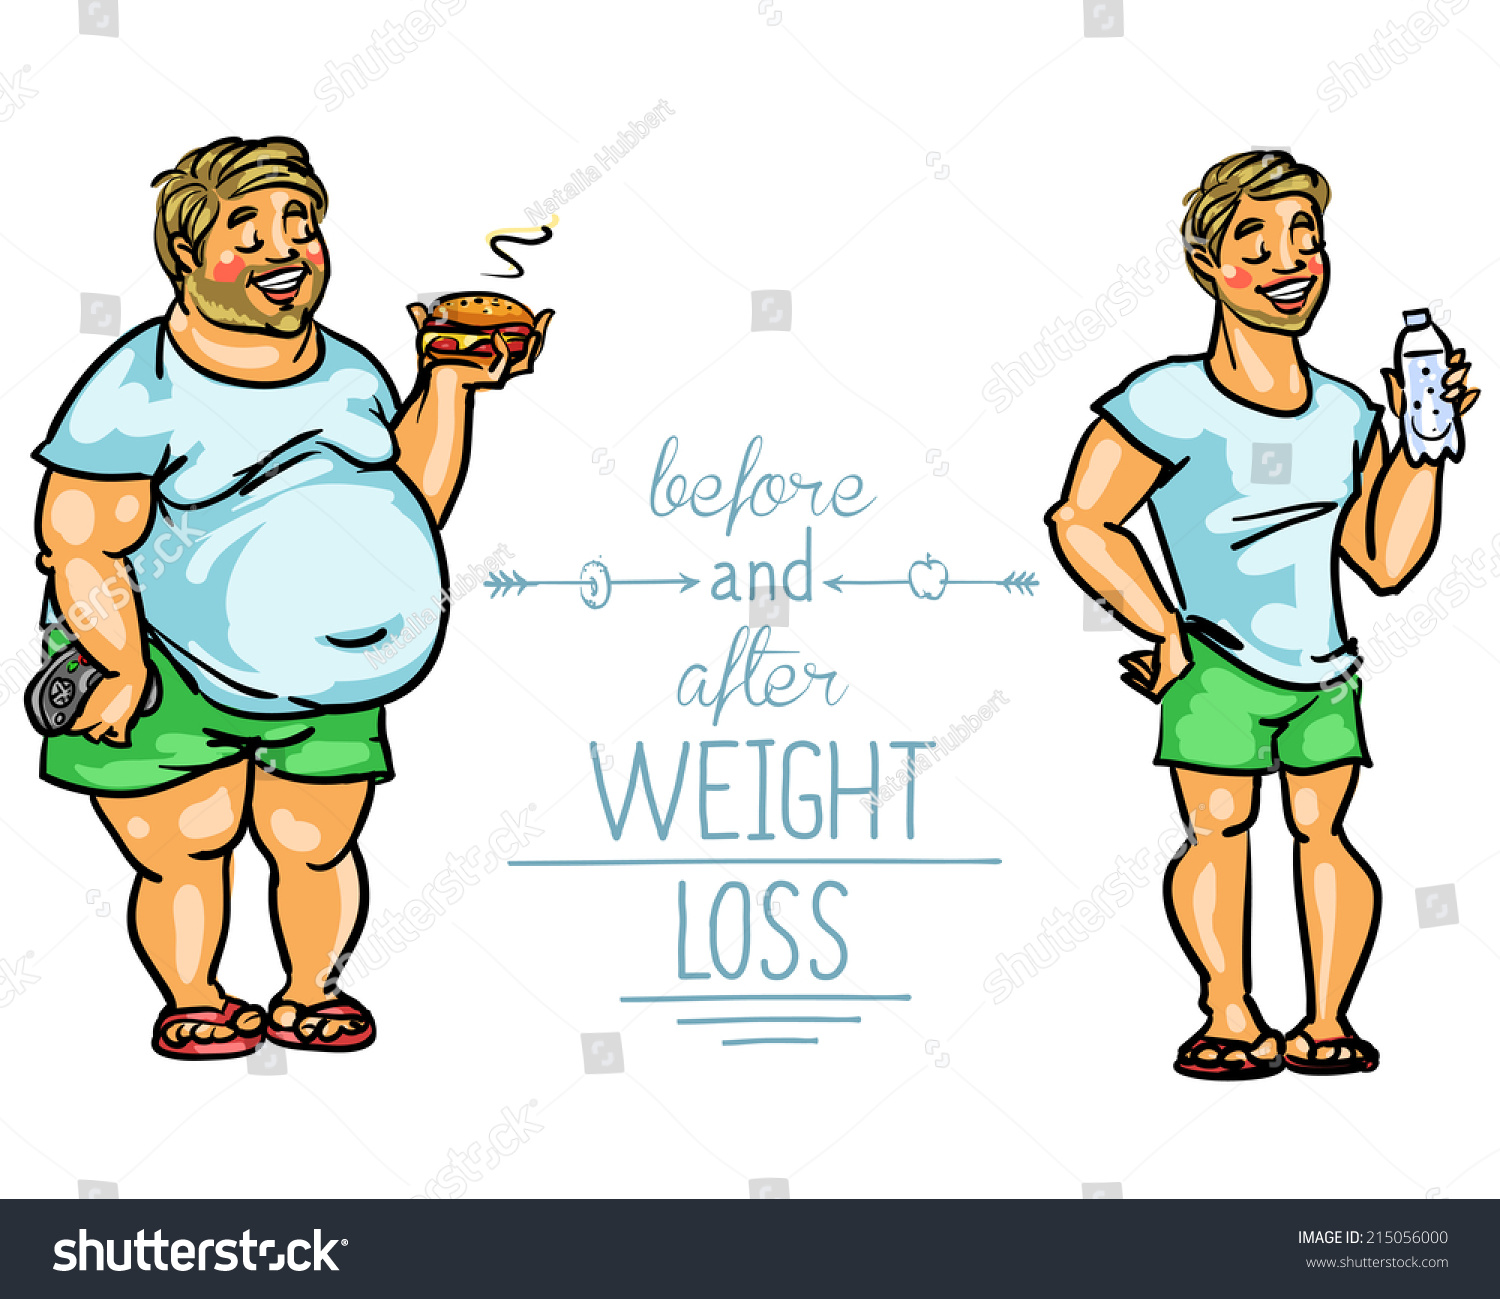 Man Before After Weight Loss Cartoon Stock Vector ...